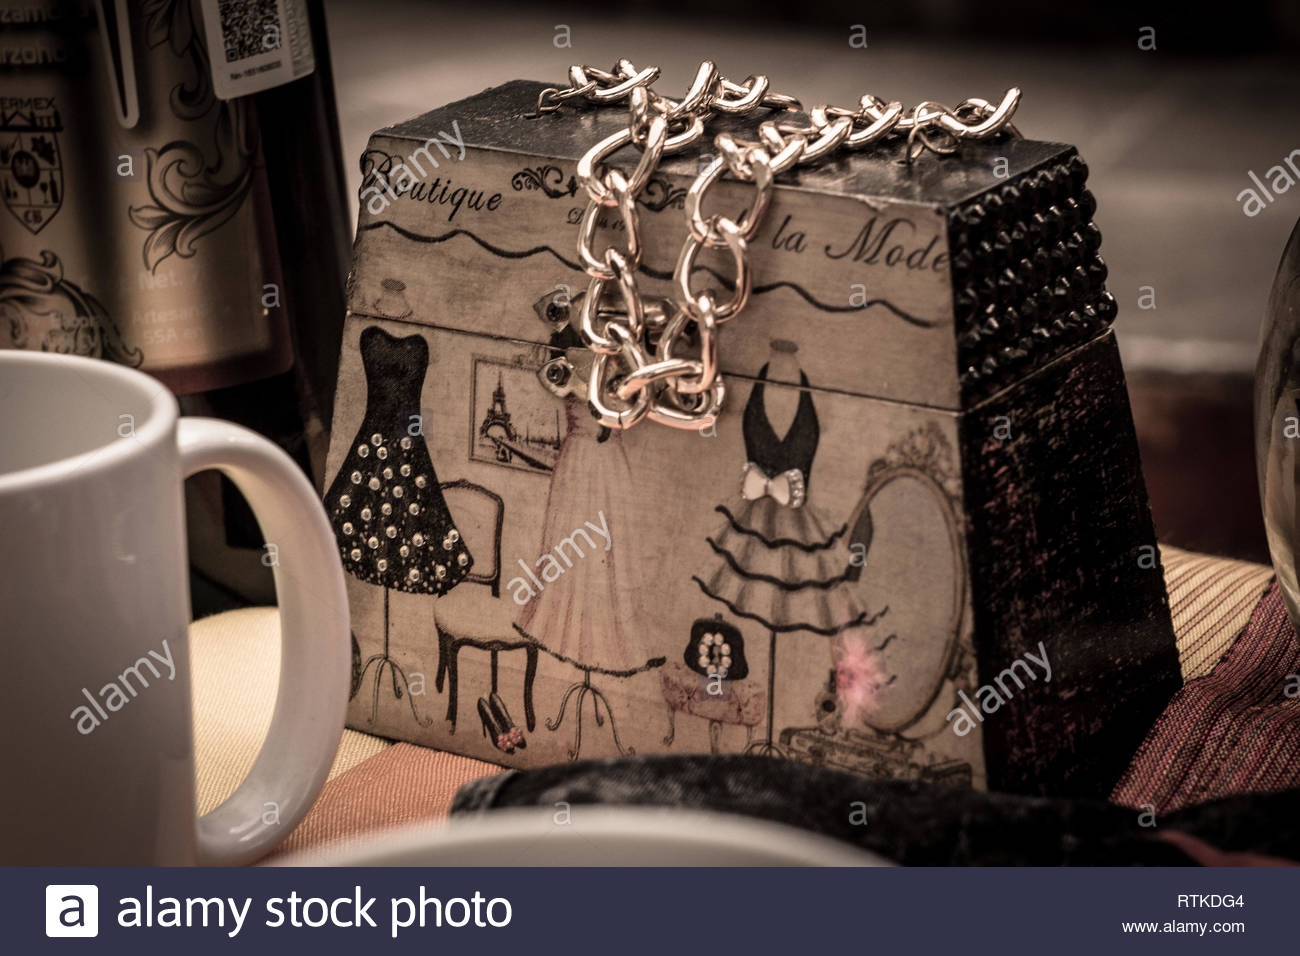 Handcrafted purse made with wood by an artisan - Stock Image